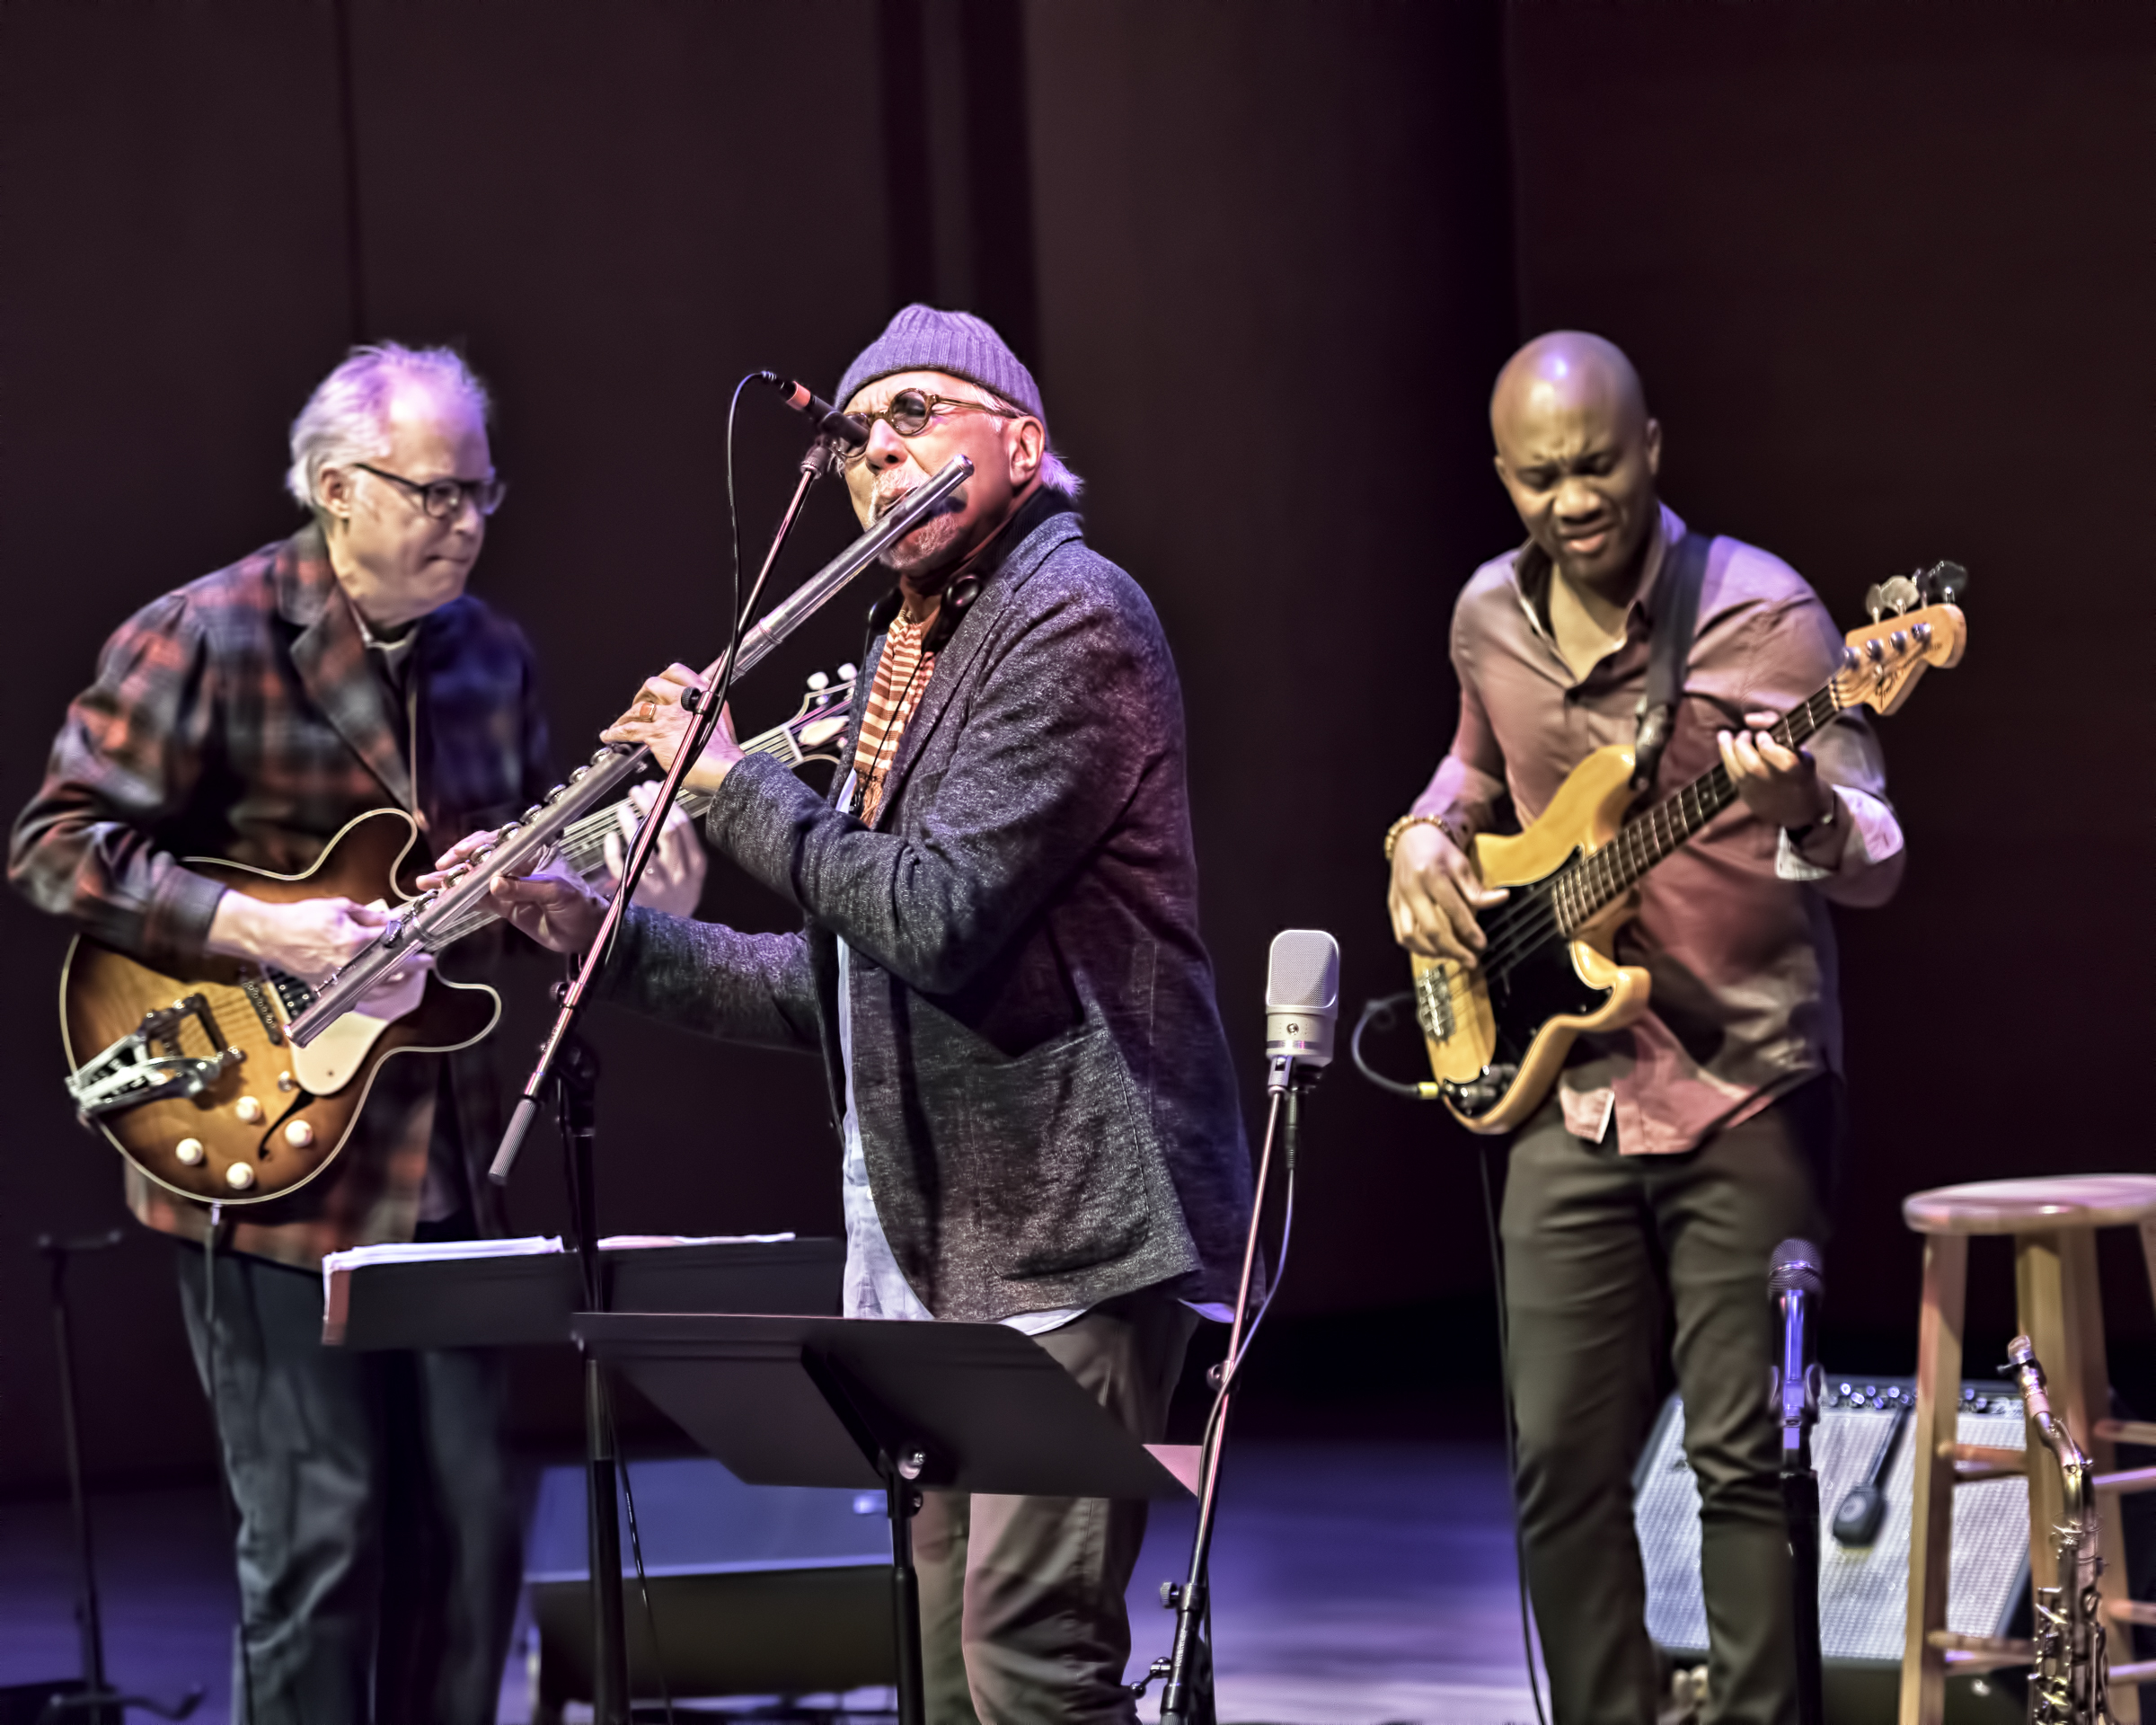 Bill Frisell, Charles Lloyd And Reuben Rogers With Quartet At The Musical Instrument Museum (mim) Phoenix